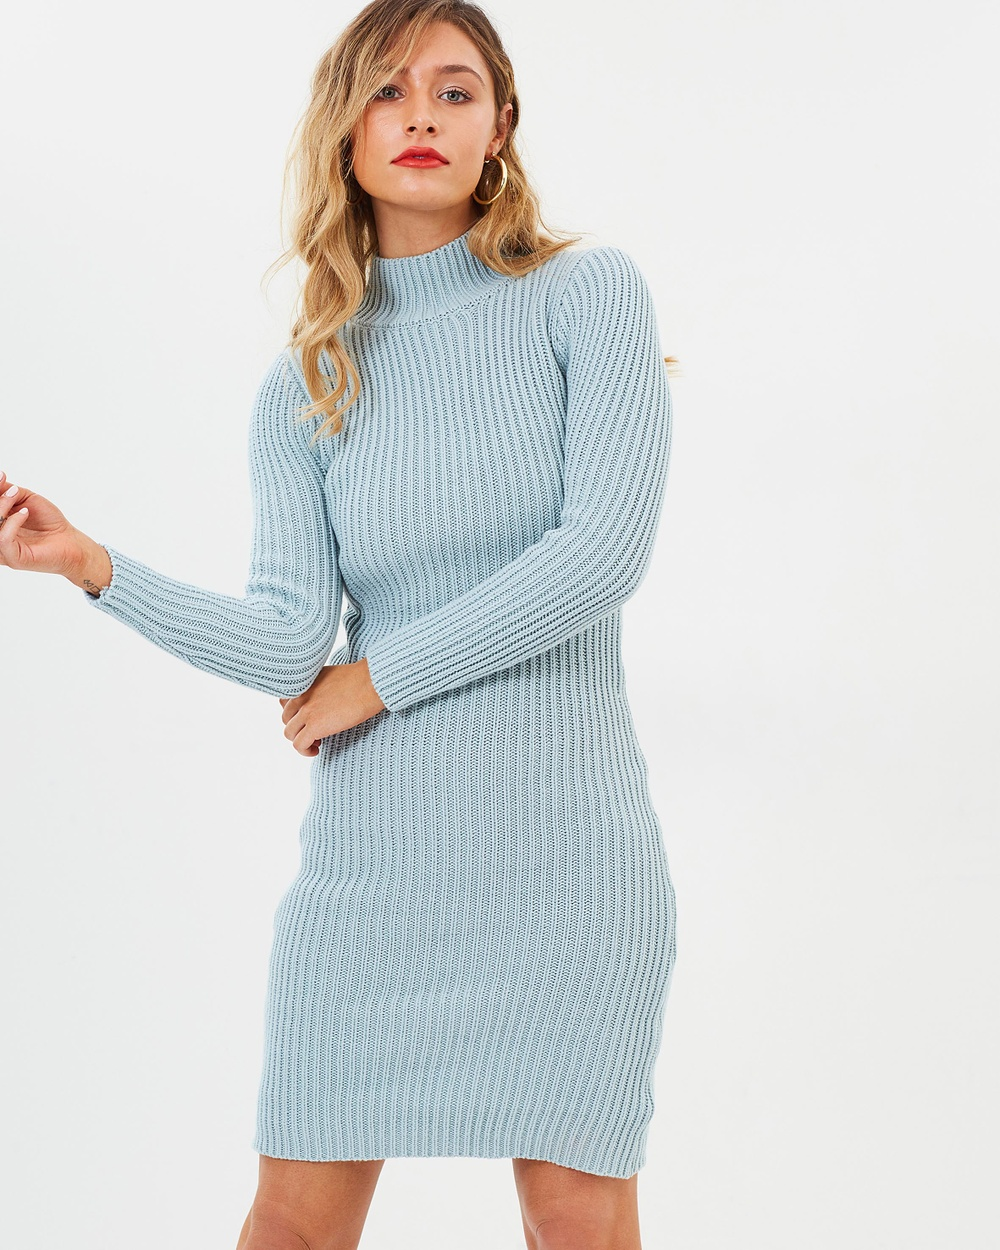 Lioness Manhattan Knit Dress Bodycon Dresses Cloud Grey Manhattan Knit Dress